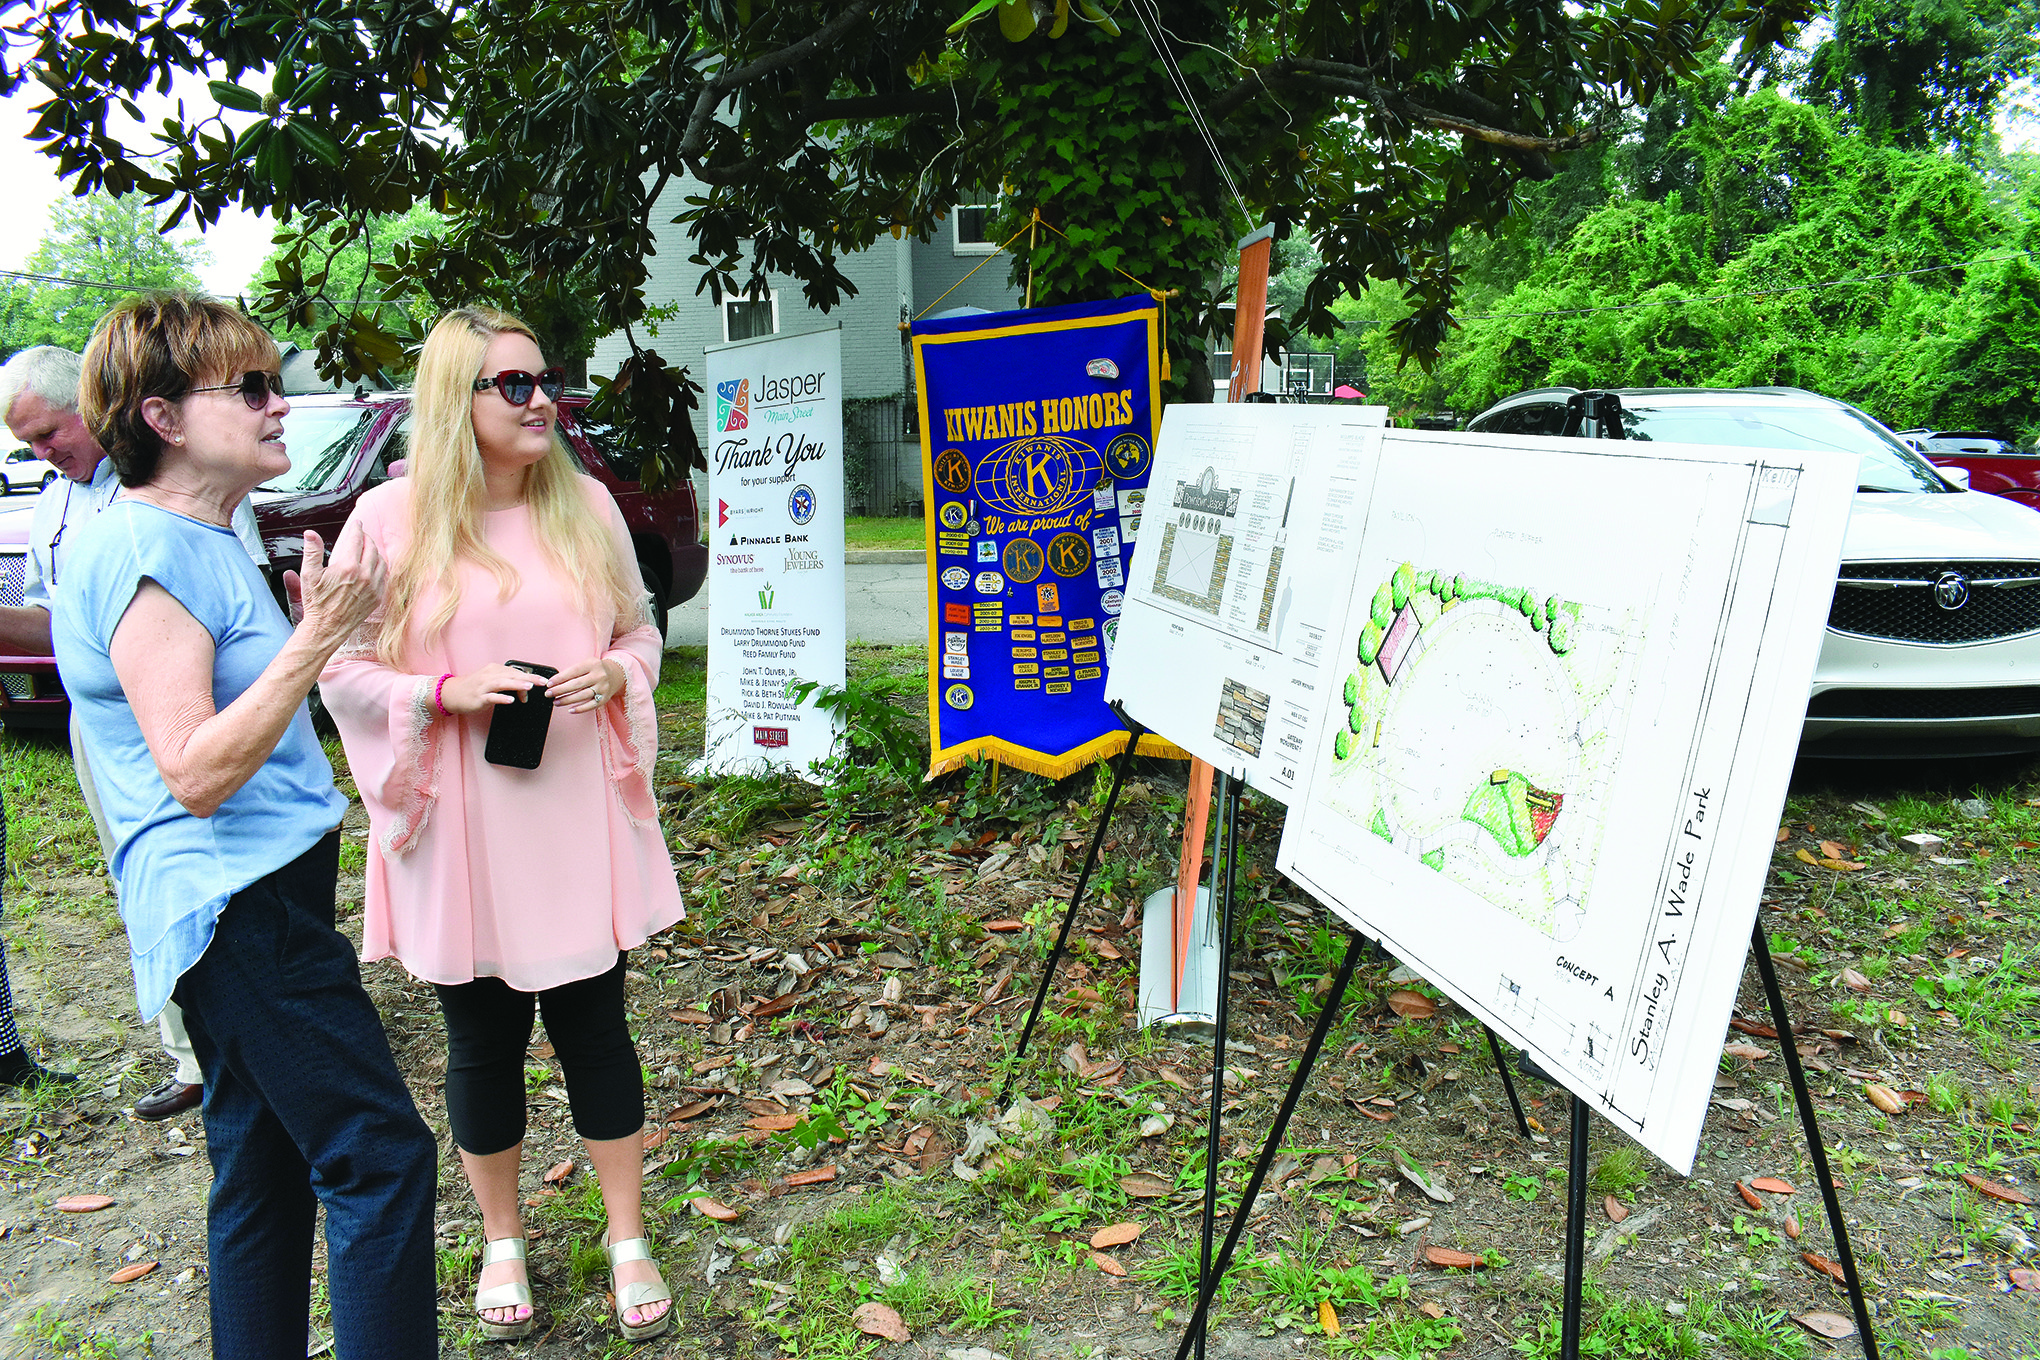 Helen Louise Wade Johnson, far left, looks on Friday at drawings for a new Jasper pocket park and Downtown Jasper welcome sign. The park will be named after her father, former Probate Judge Stanley A. Wade, who died on Thursday. The drawings were set up at a groundbreaking for the park, which has been a project of the Jasper Kiwanis Club.